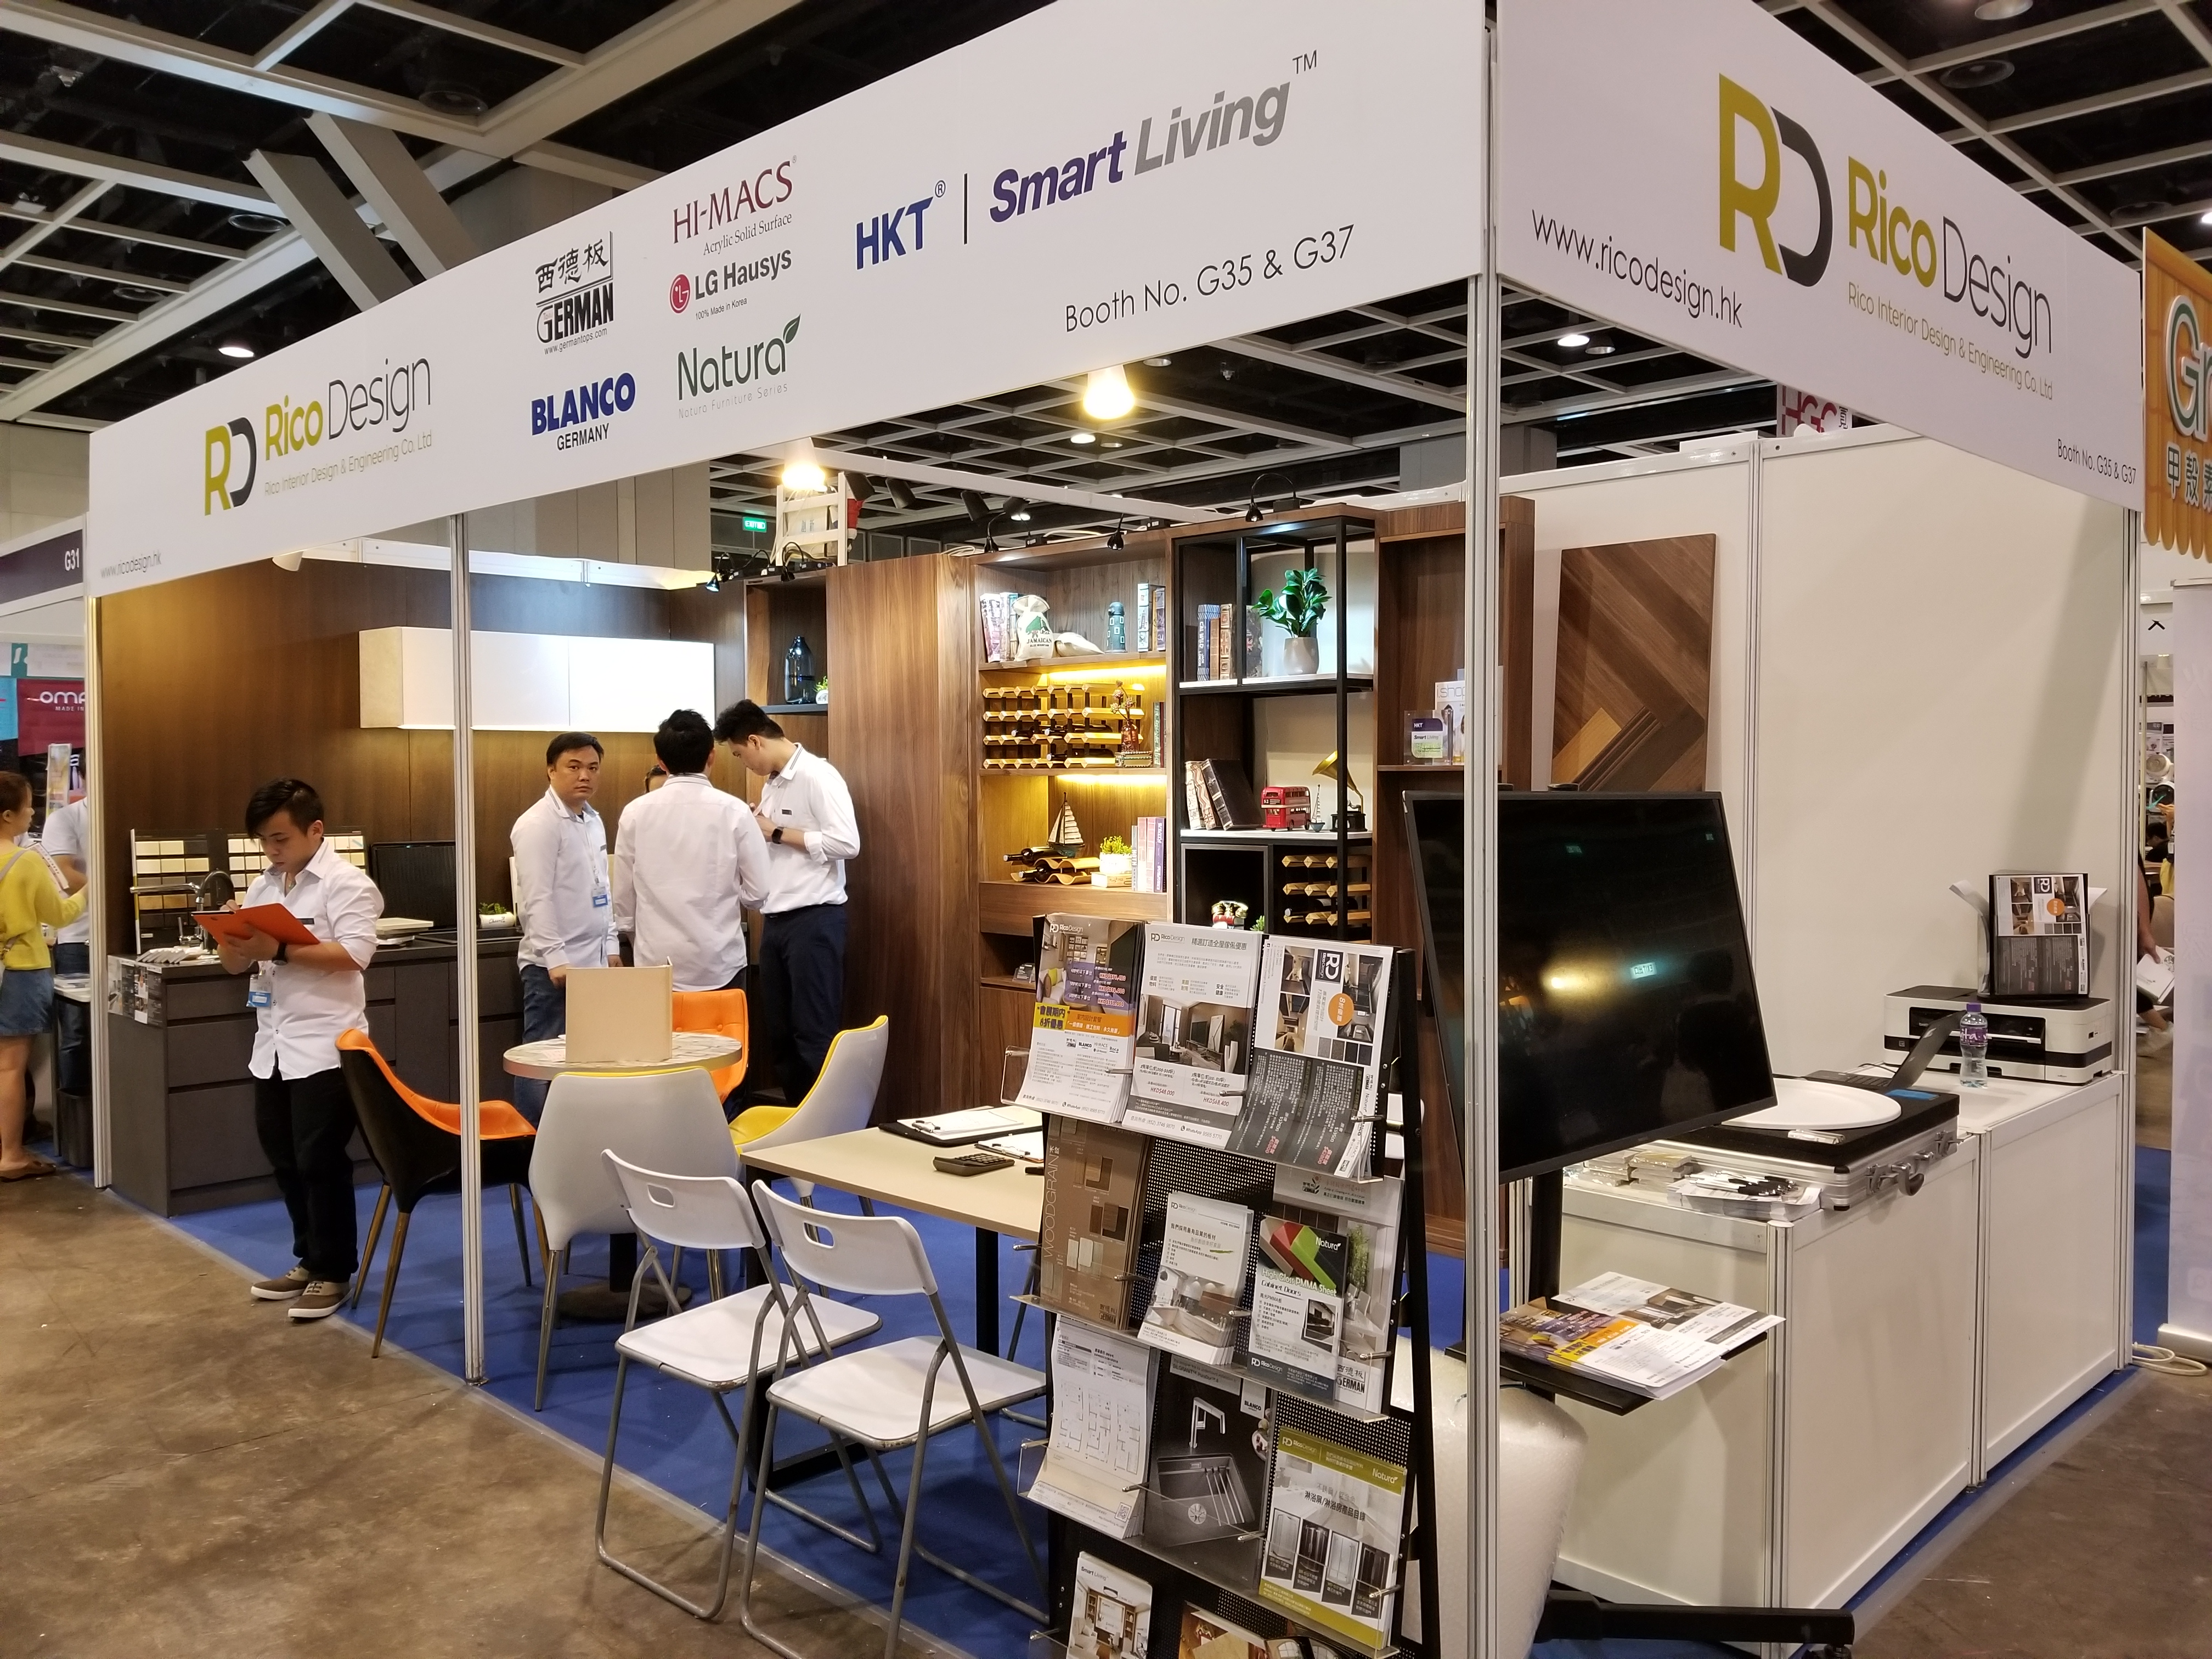 Home Decor Expo 2018 Waterfall: 【In-Home Expo香港家居博覽2018】活動回顧